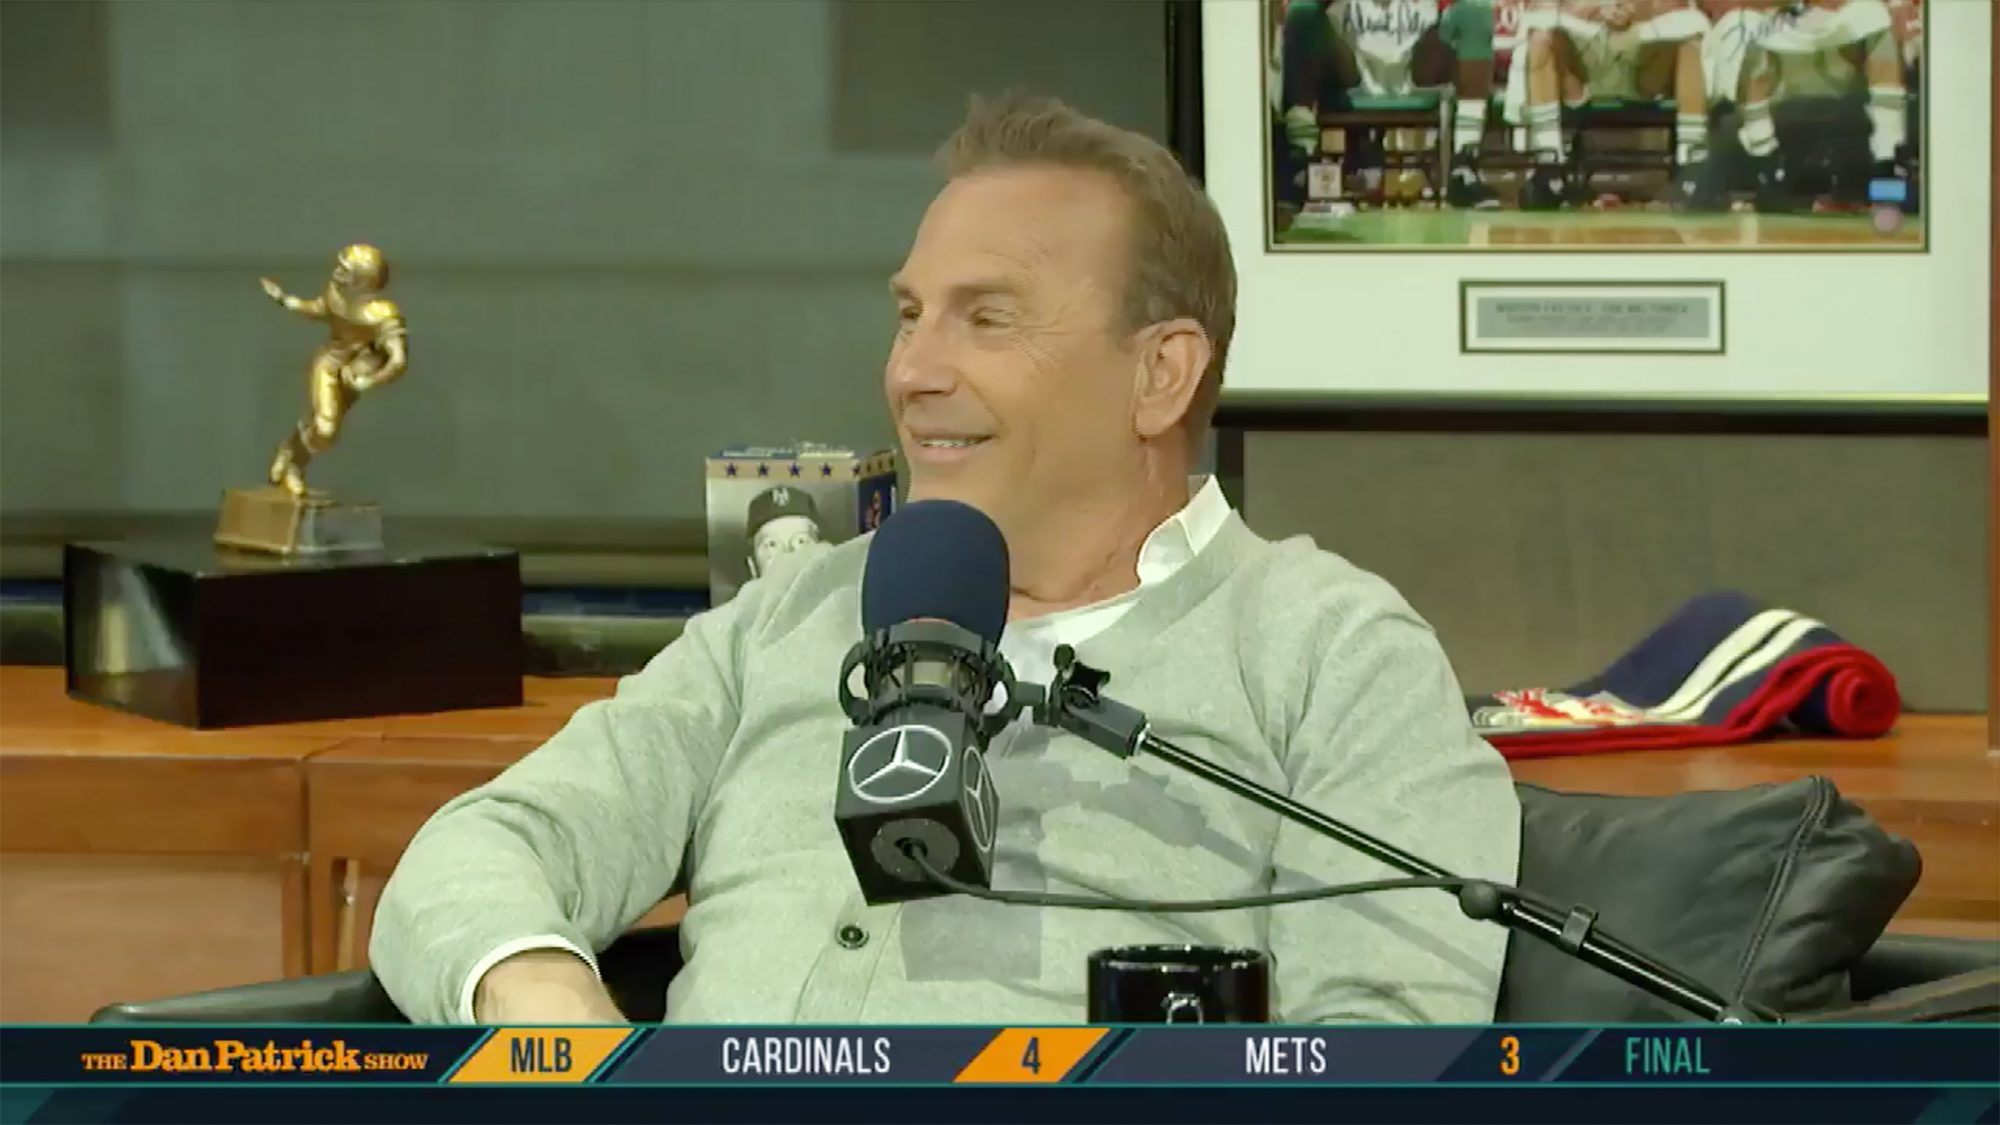 Kevin Costner drops an F-bomb on Paulie